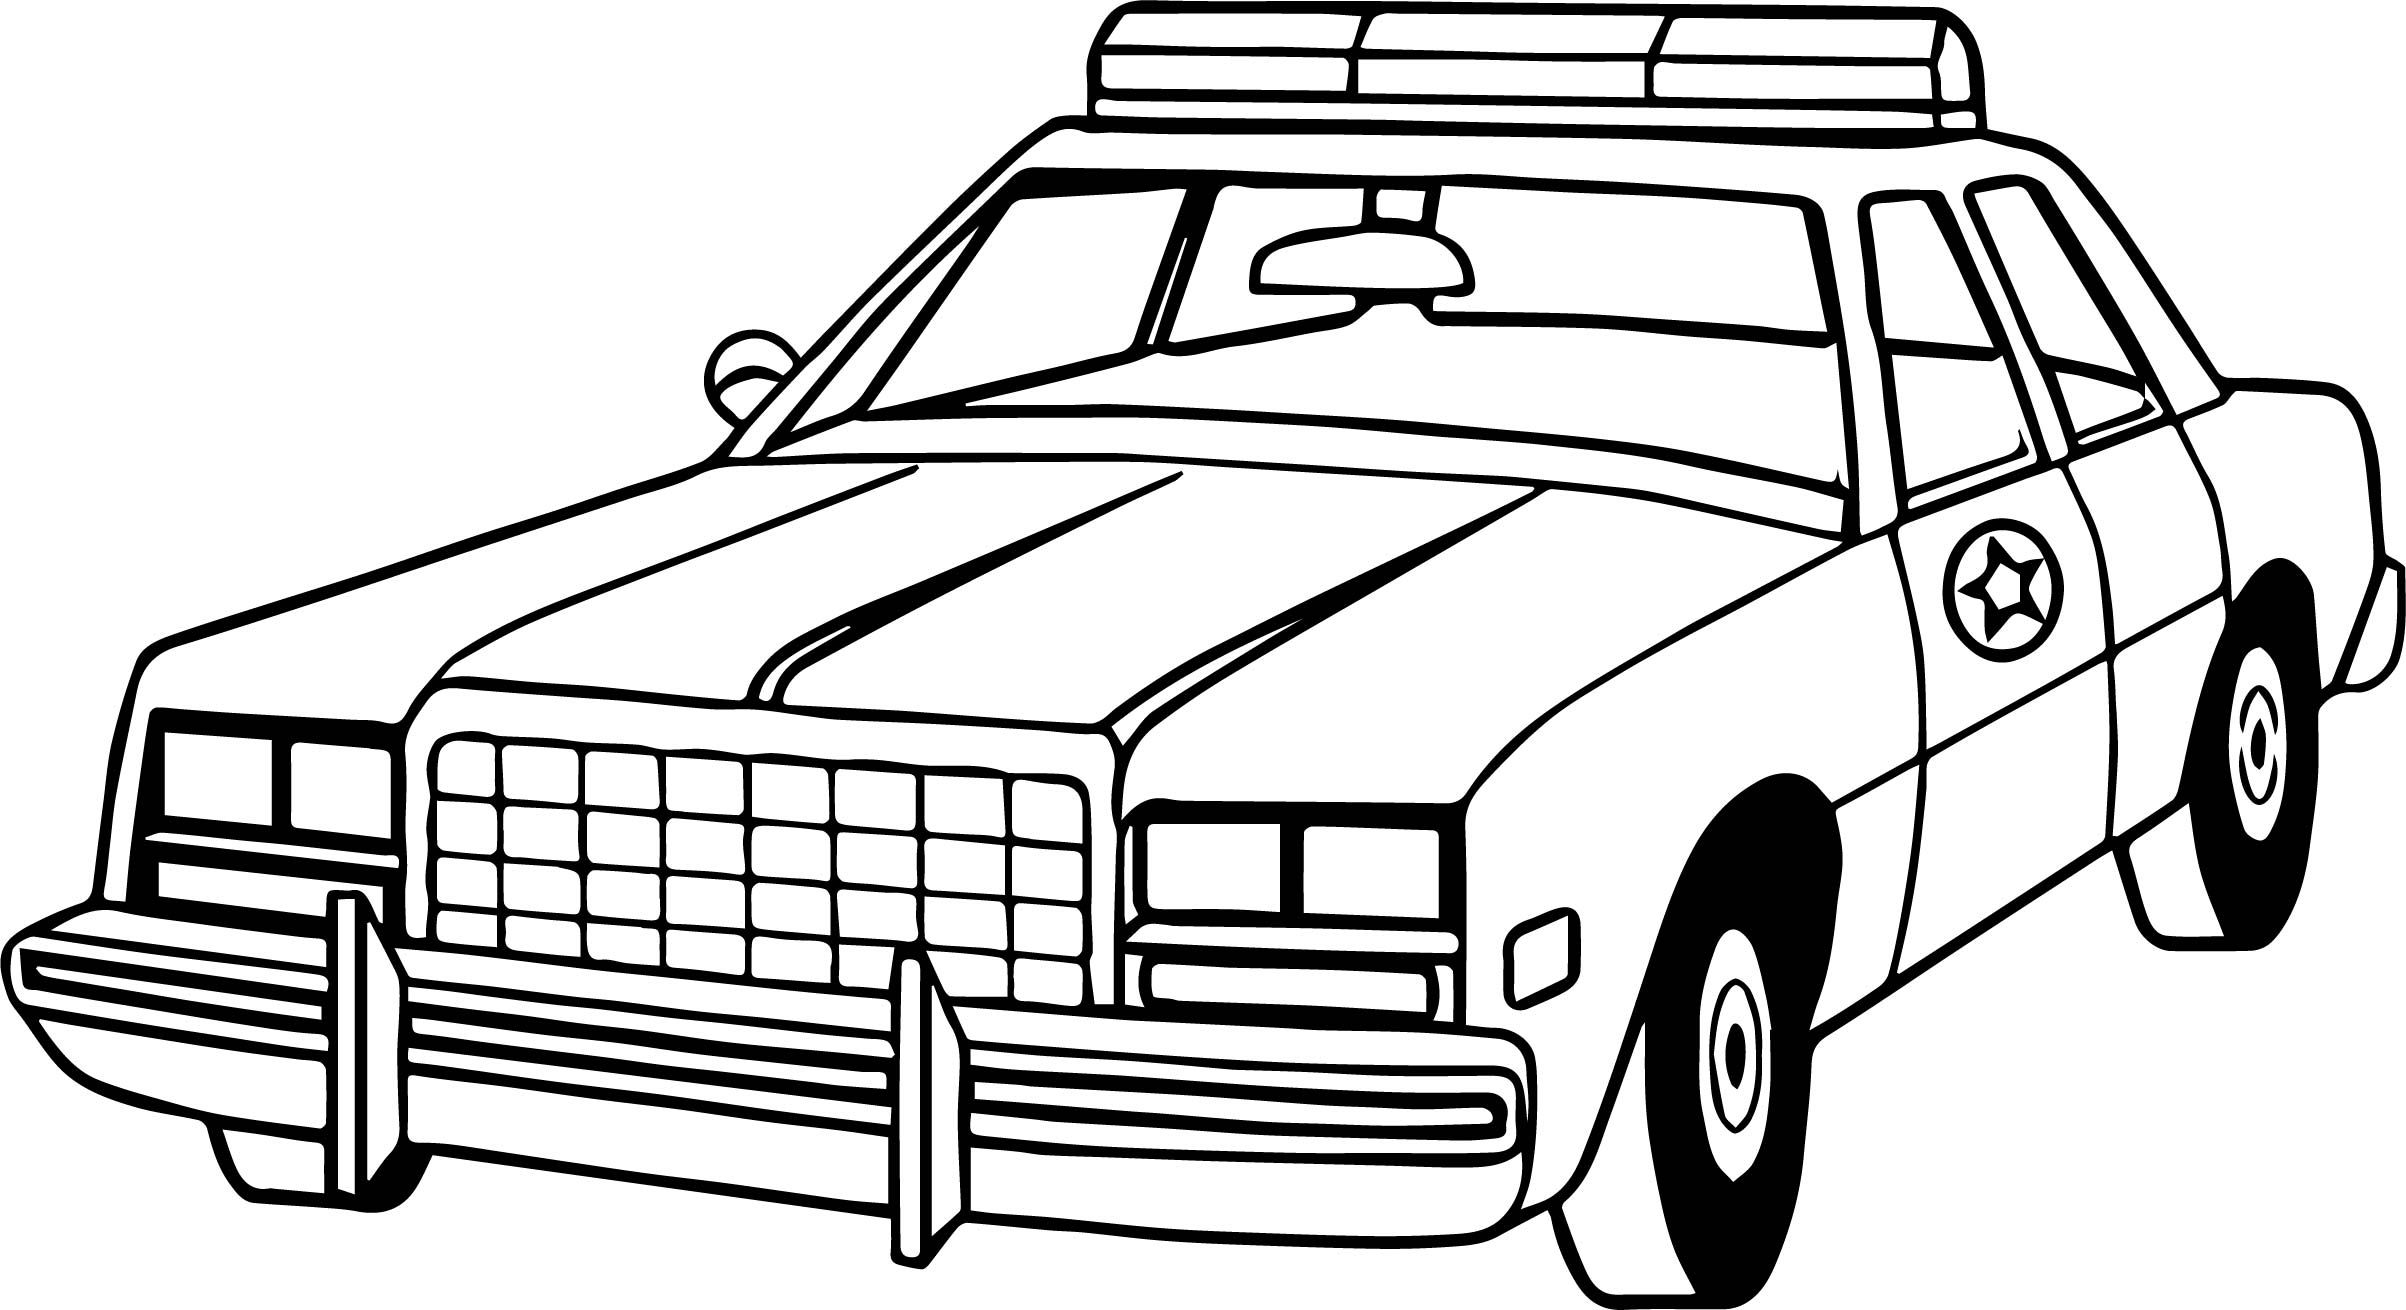 Nice New Police Car Coloring Page Cars Coloring Pages Coloring Pages For Kids Coloring Pages